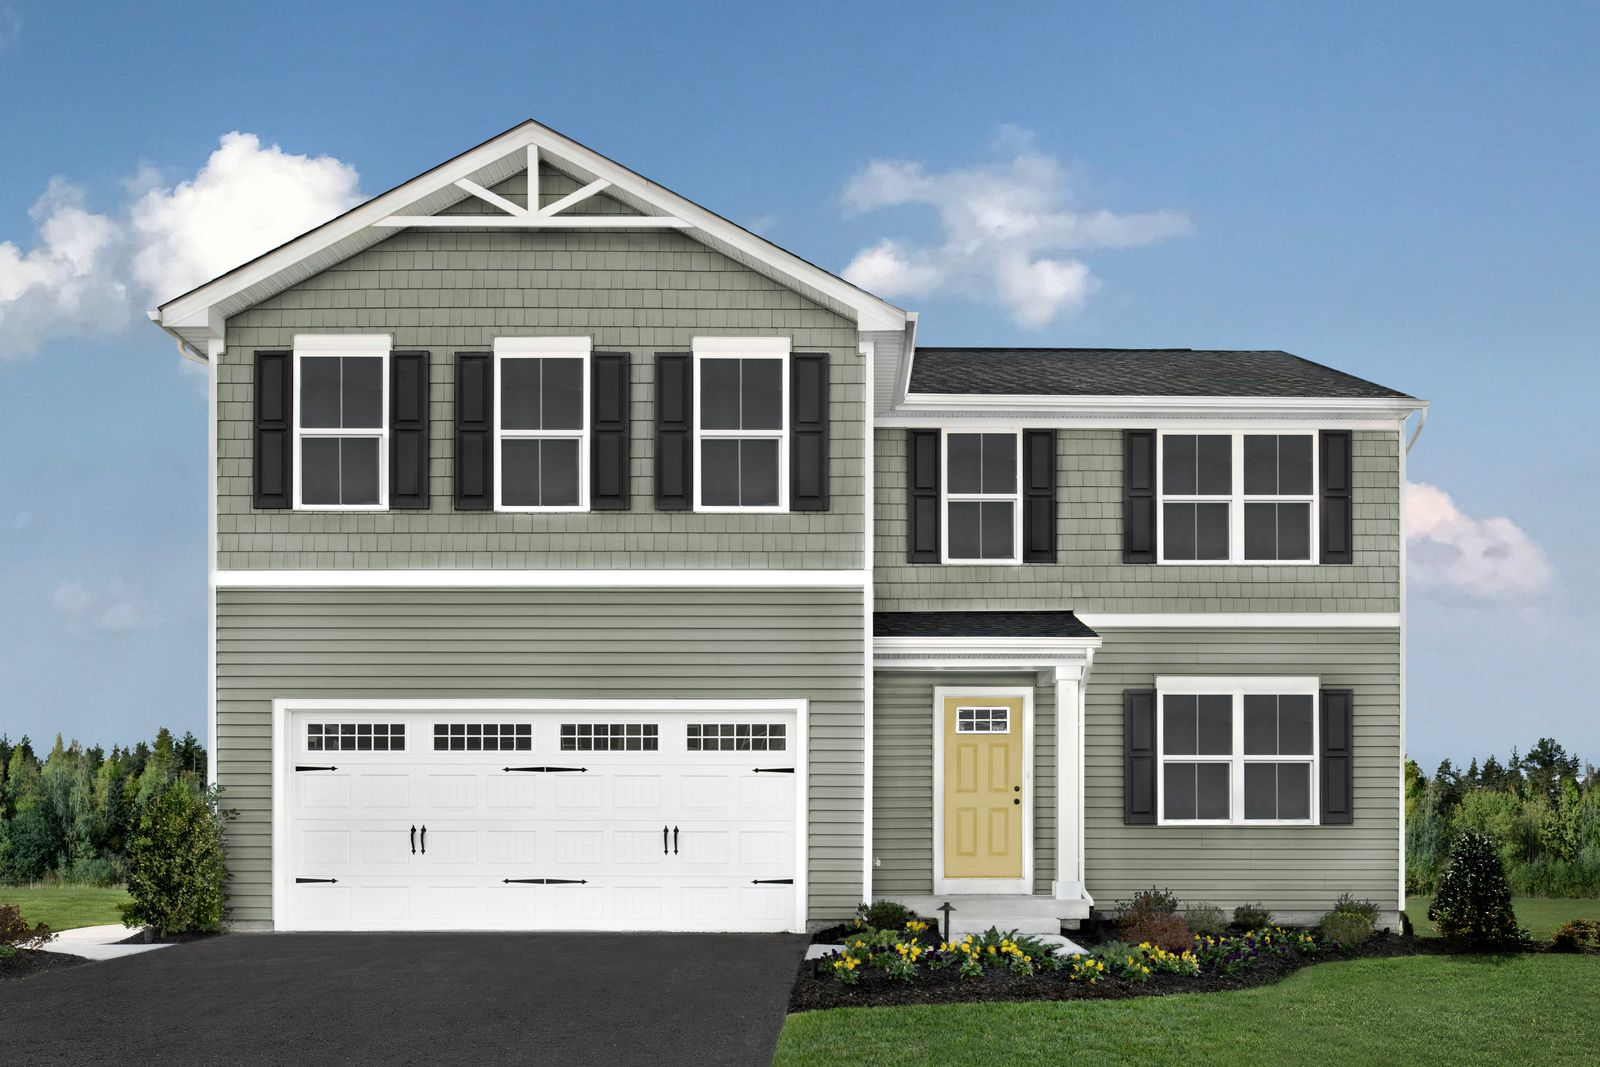 QUAIL RUN MEADOWS – COMING SUMMER 2021:Own an affordable, new construction home with a large backyard in a peaceful setting, just 1 mi from I-65 and 20 min from Franklin/Cool Springs - from the low $300s.Join the VIP list today!